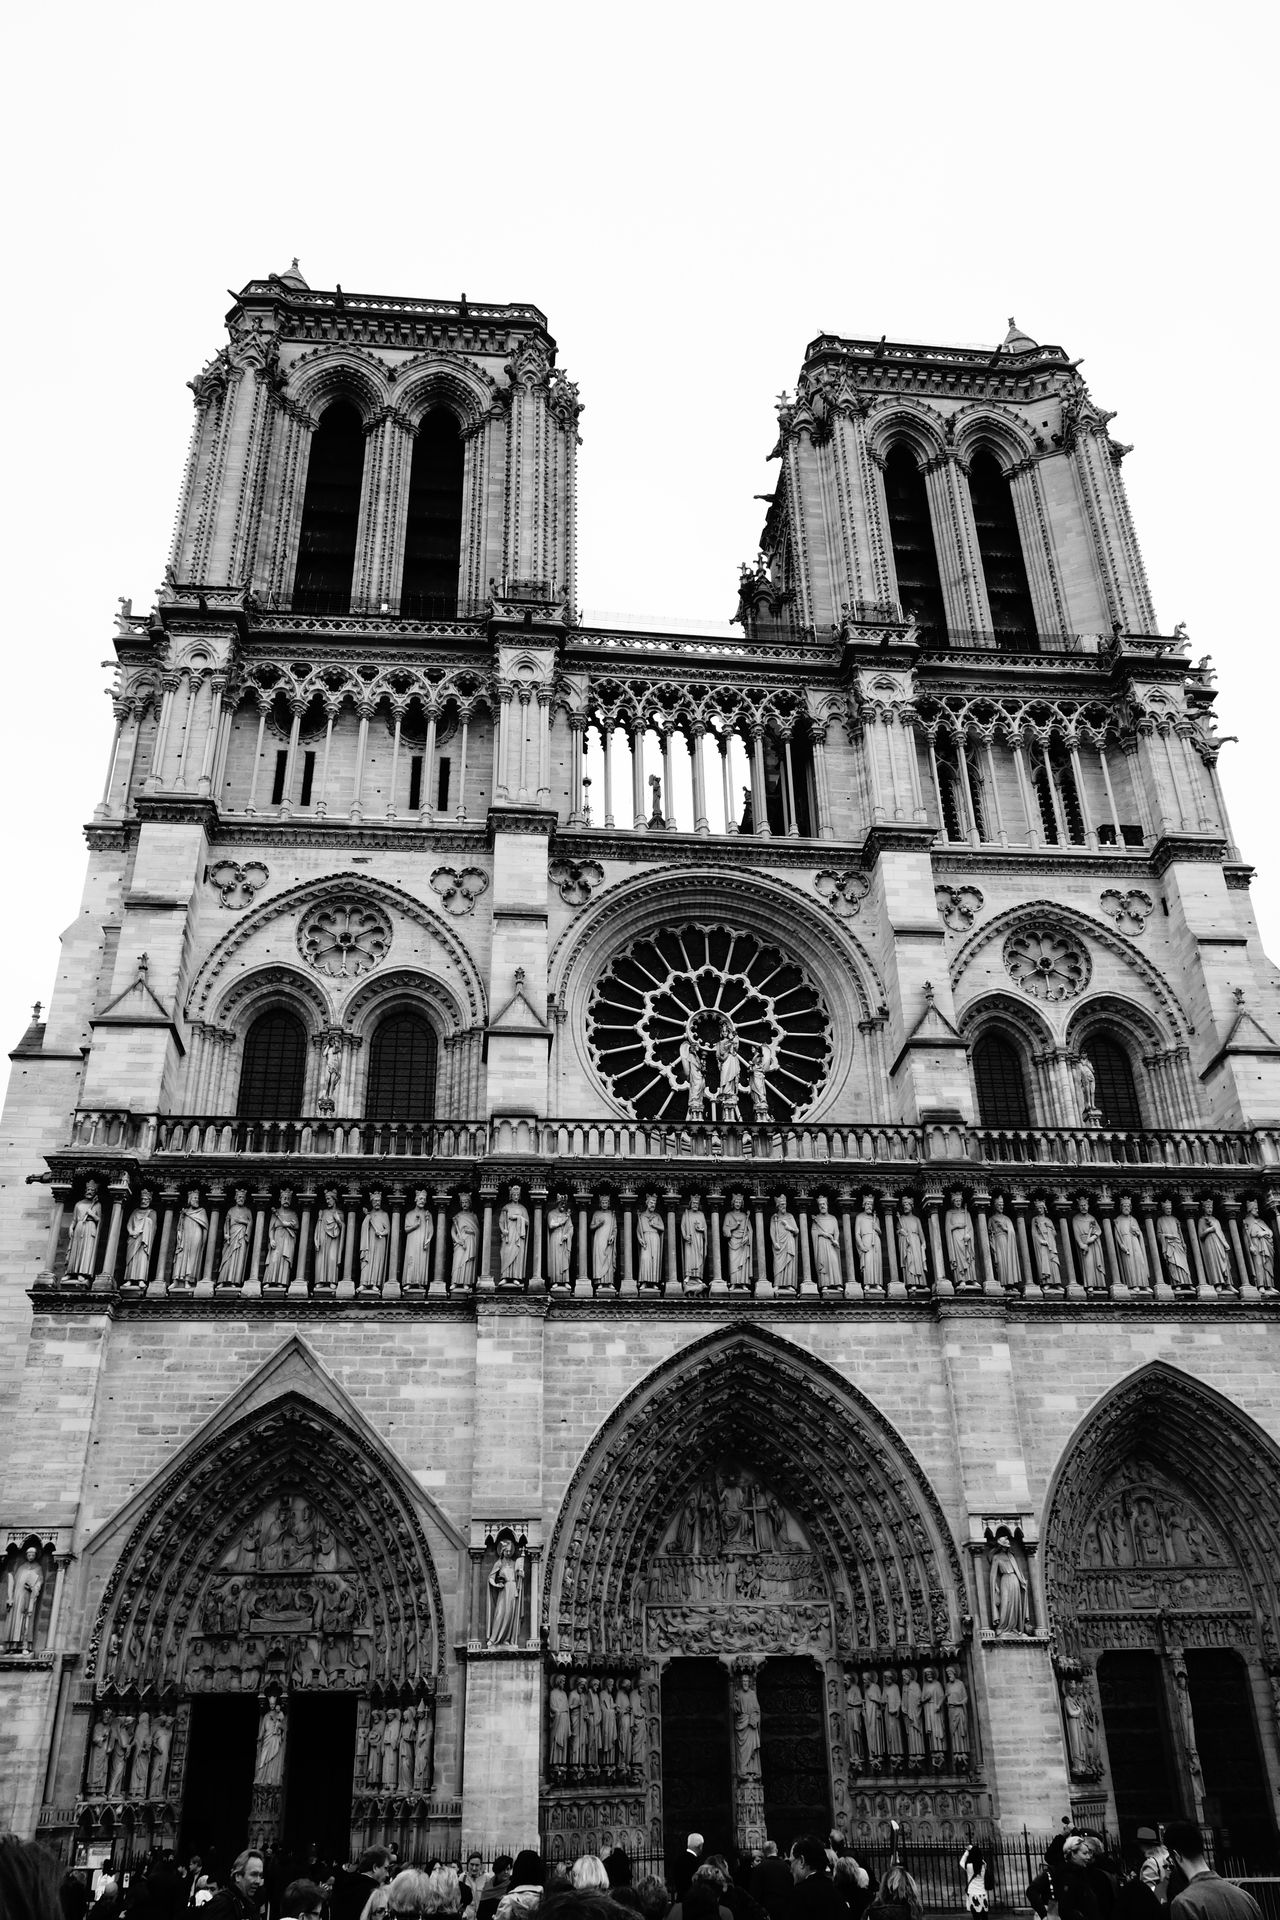 Amazing Amazing Architecture Amazing View Architectural Detail Architectural Feature Architecture Architecture_collection Building Exterior Church Churches Exploring Exploring New Ground French High Contrast Notre Dame De Paris Notre-Dame Photography Renaissance Taking Photos Taking Pictures Tourism Travel Travel Destinations Traveling Walking Around